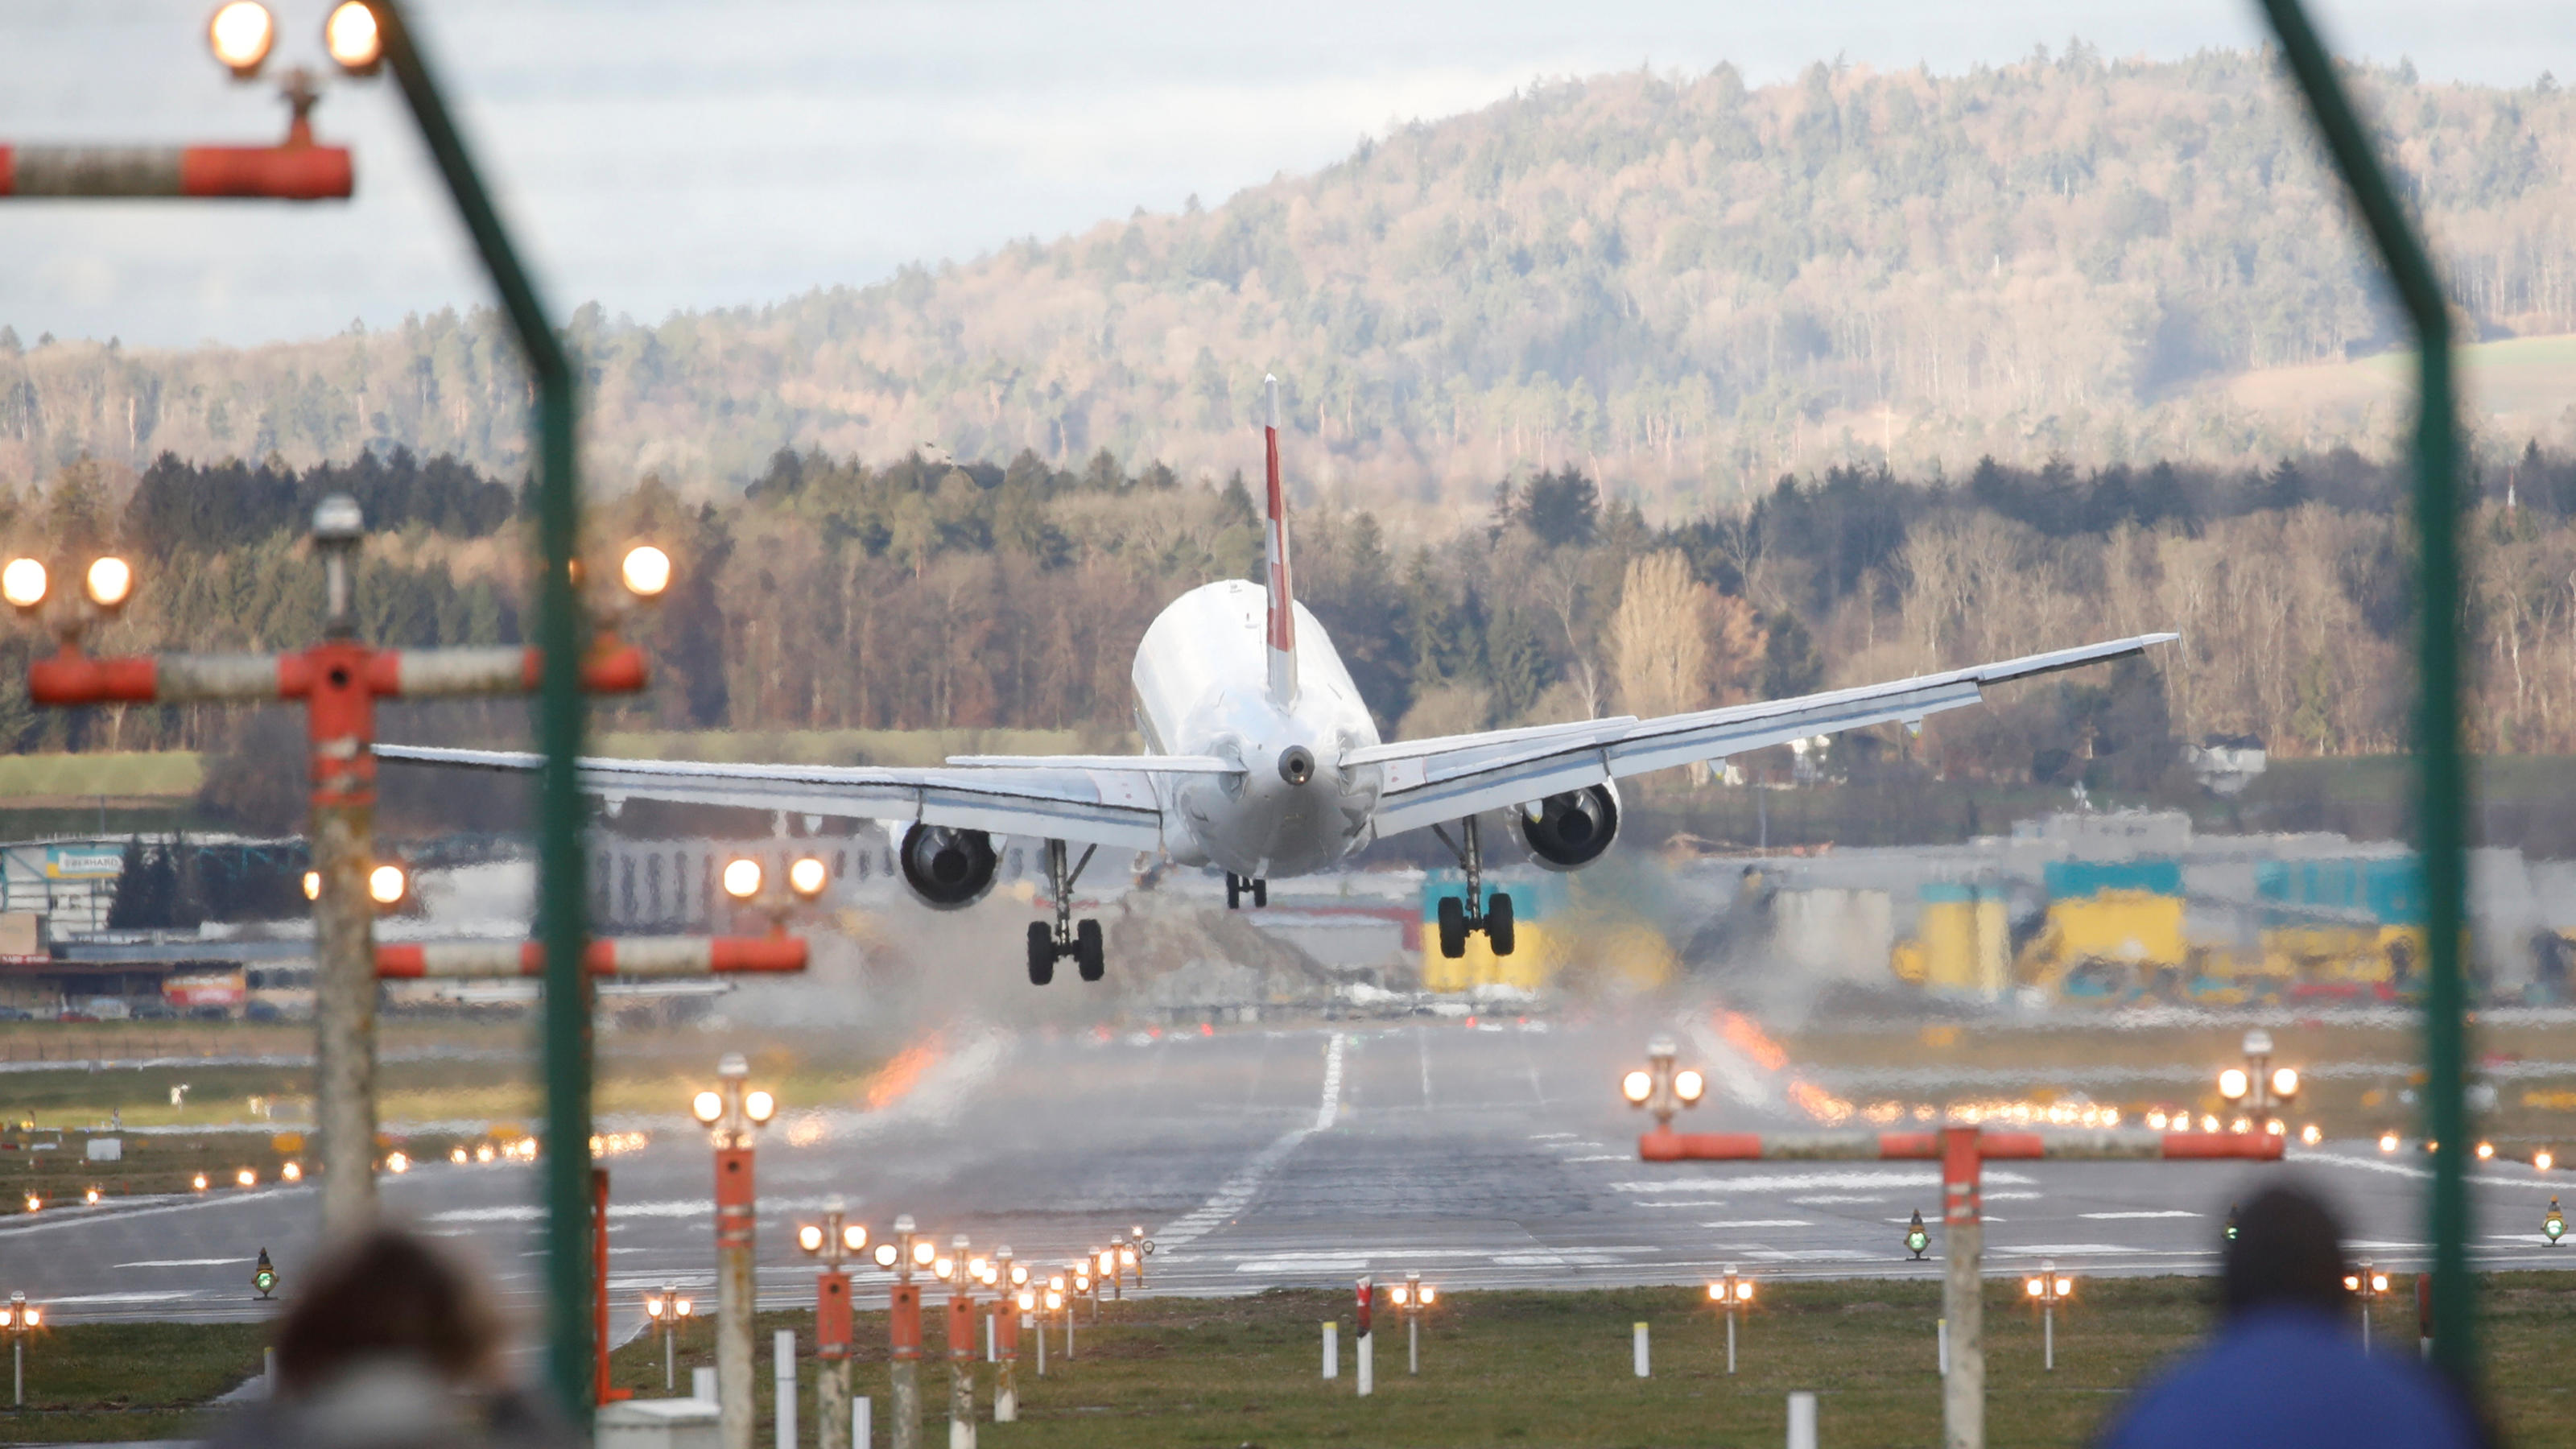 A plane of Swiss Airlines makes a go-around after trying to land during storm